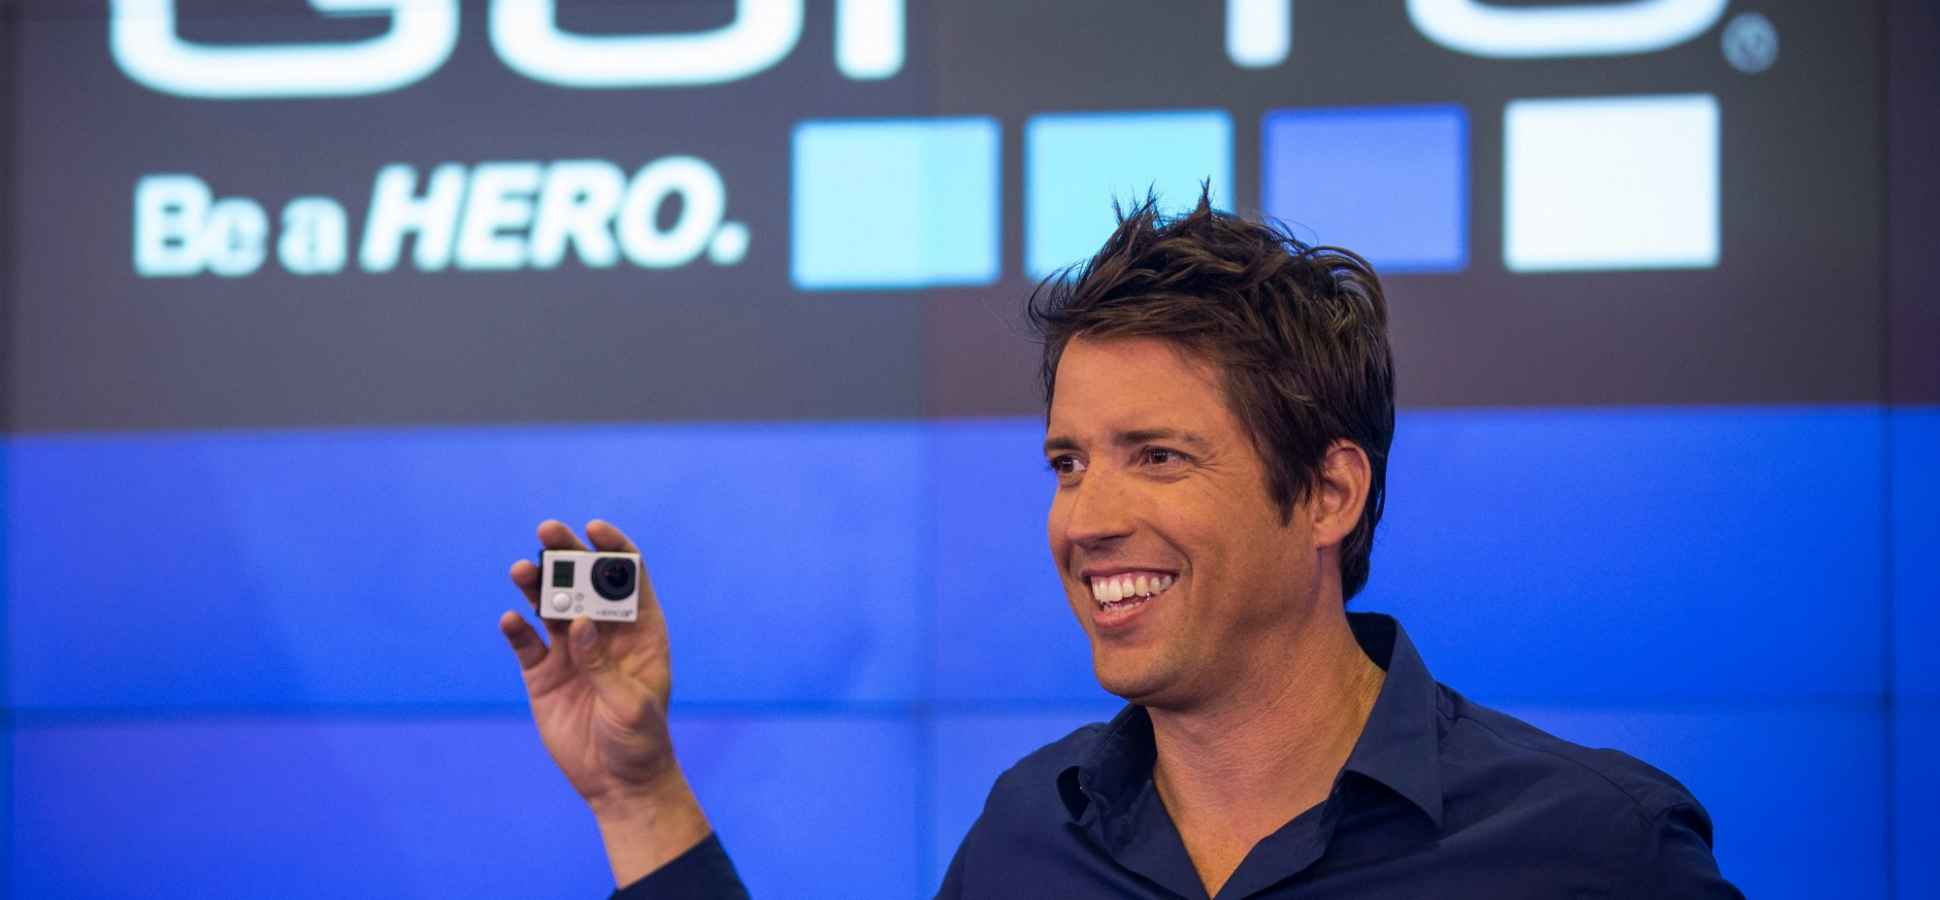 GoPro to Cut Nearly 100 Jobs After Weak Fourth Quarter Sales